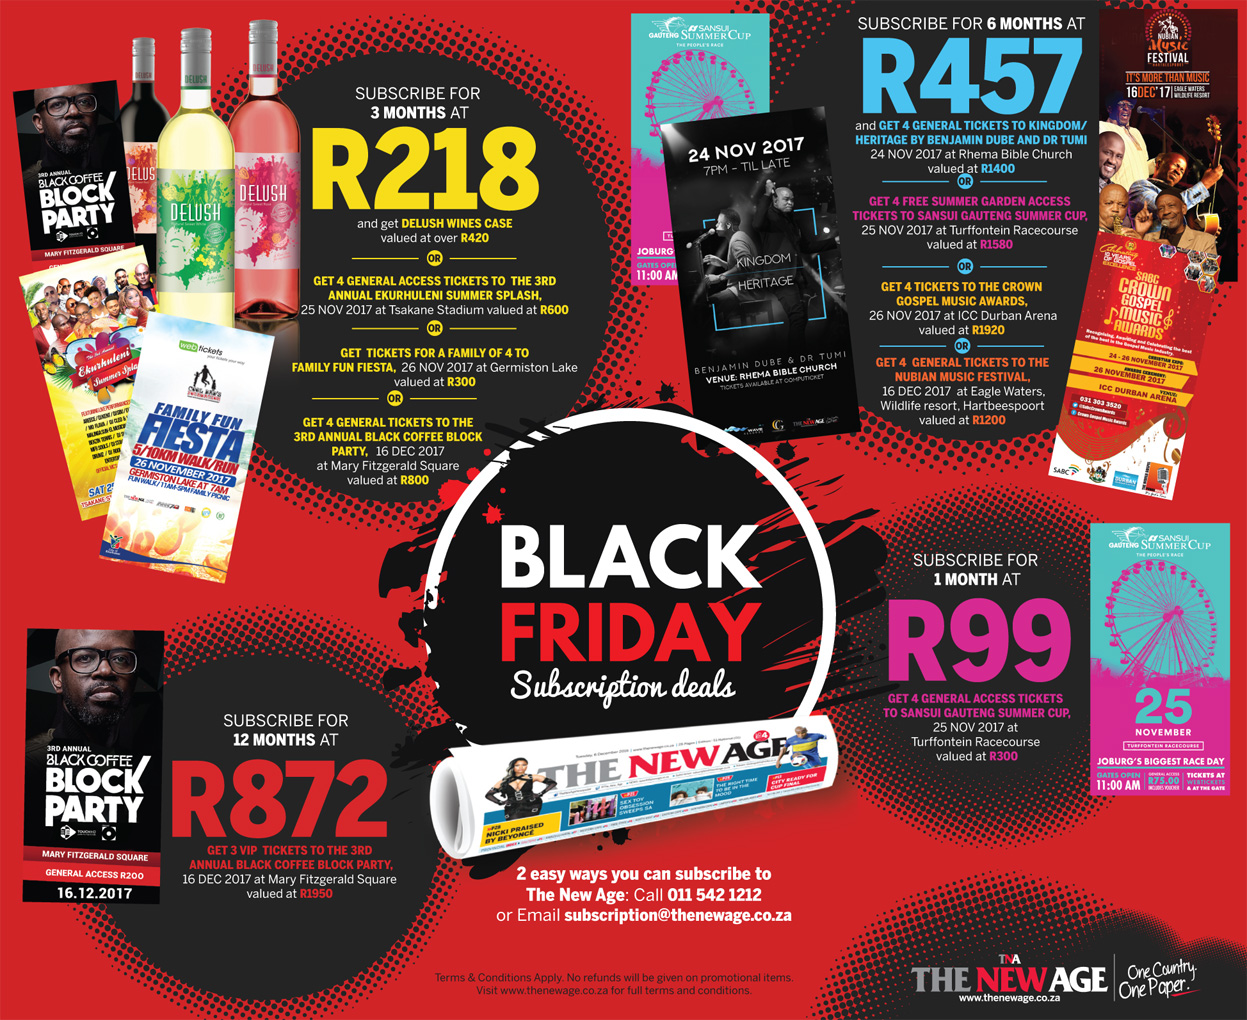 Black Friday Subscription Deals- Subscribe to The New Age